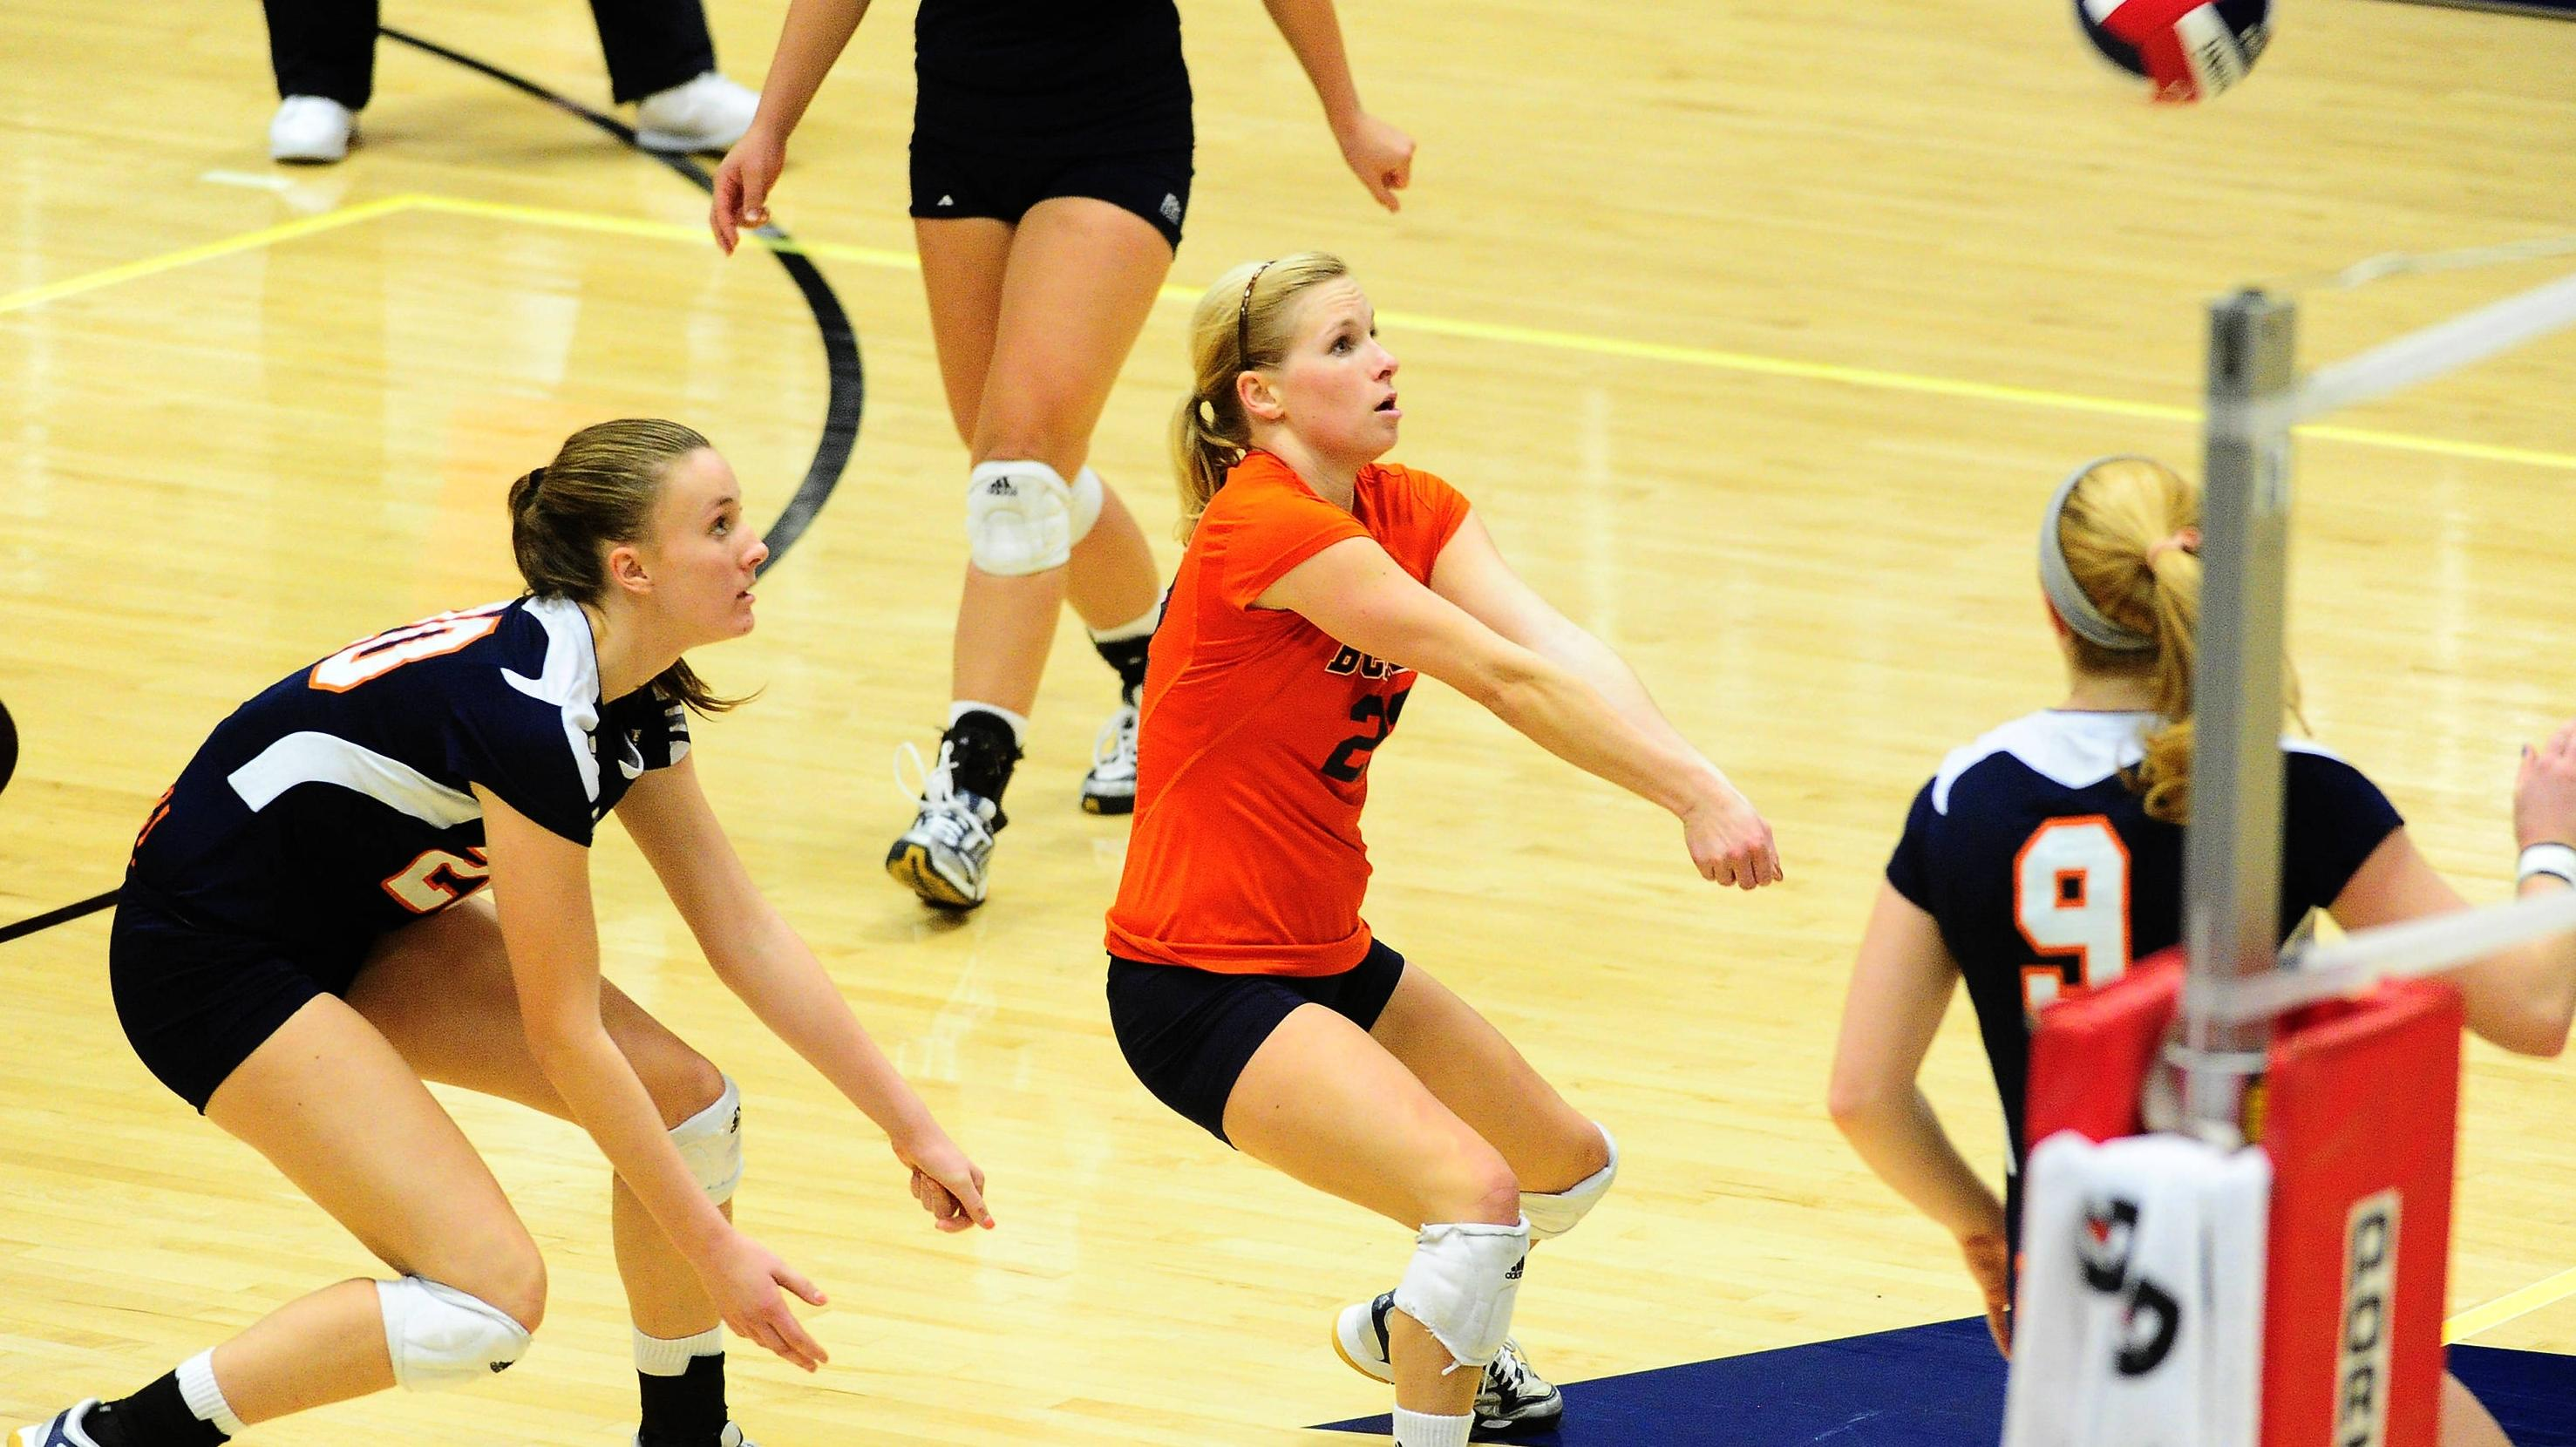 Volleyball Travels To Columbia Invitational This Weekend Bucknell